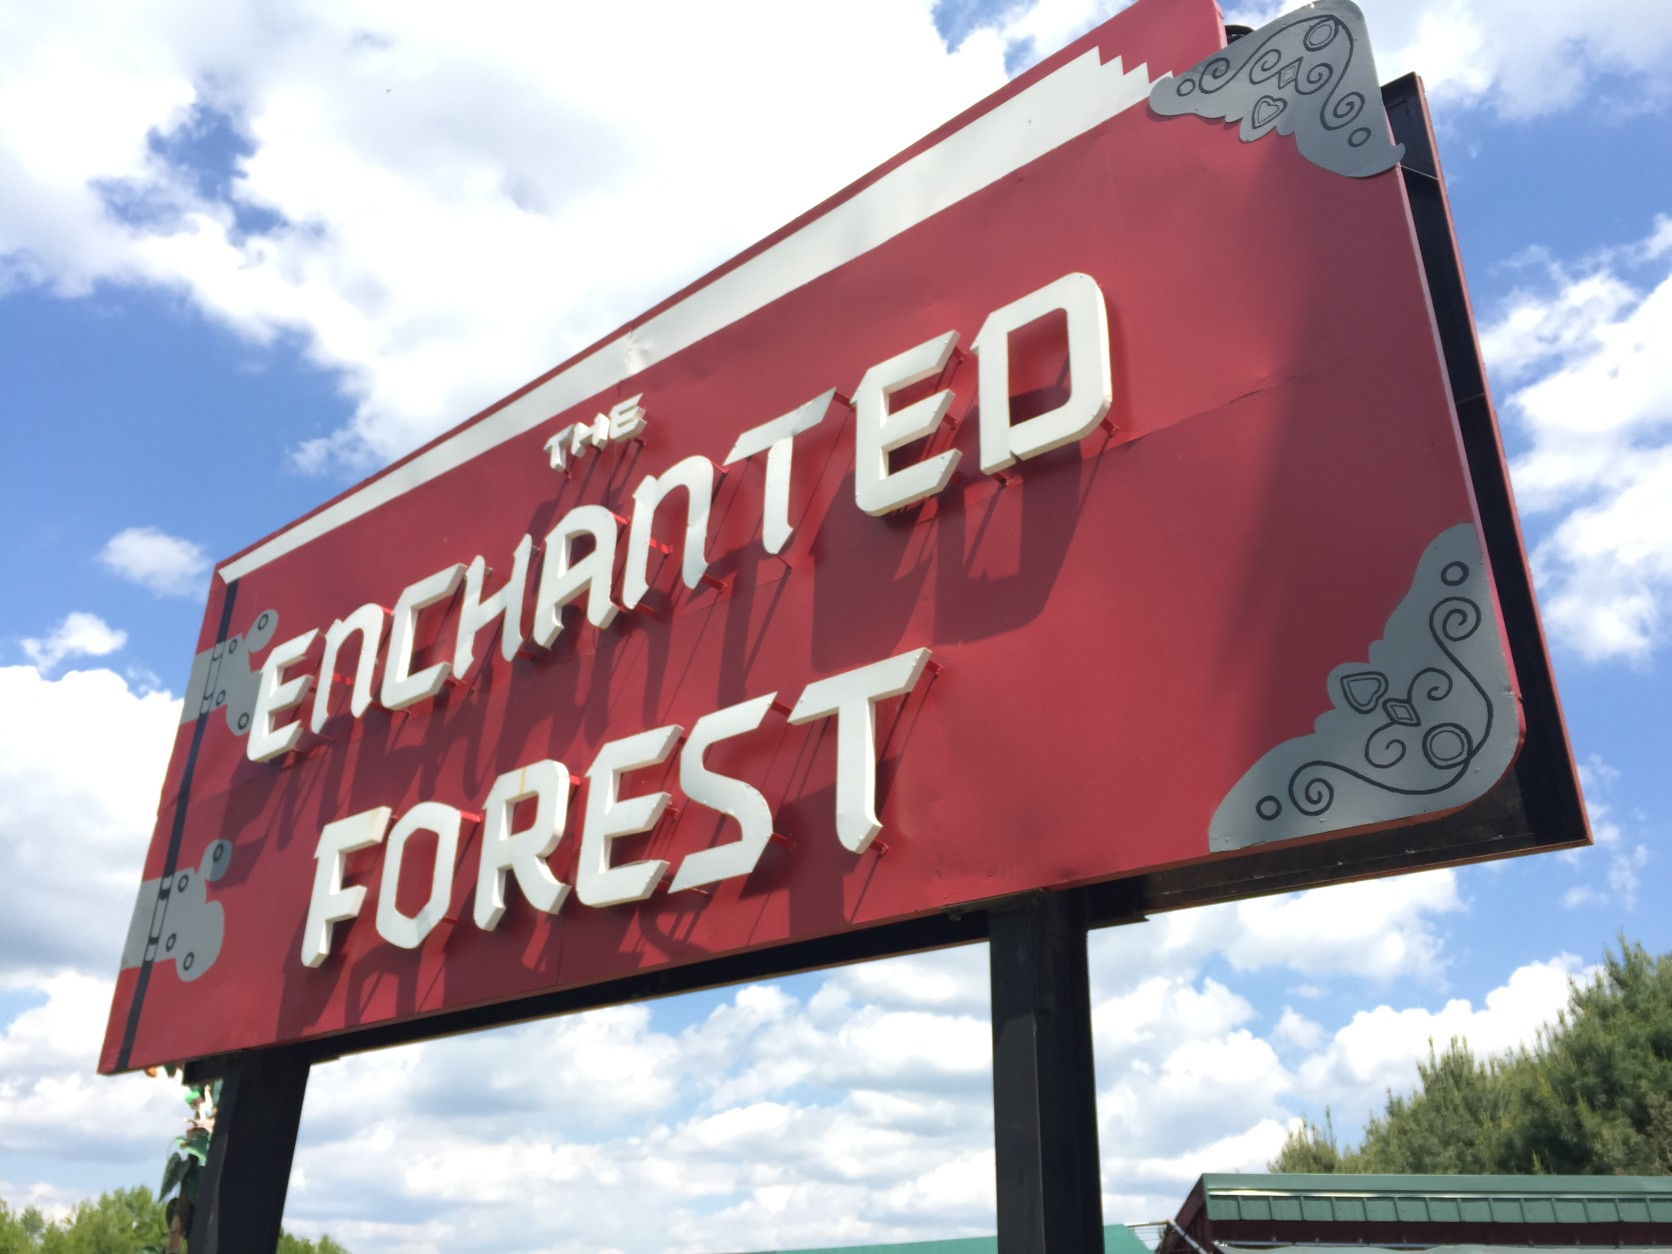 The metal Enchanted Forest sign was moved to Clark's Elioak Farm last summer, along with a white castle. Both used to greet visitors at the entrance to the long-closed amusement park. (WTOP/Michelle Basch)